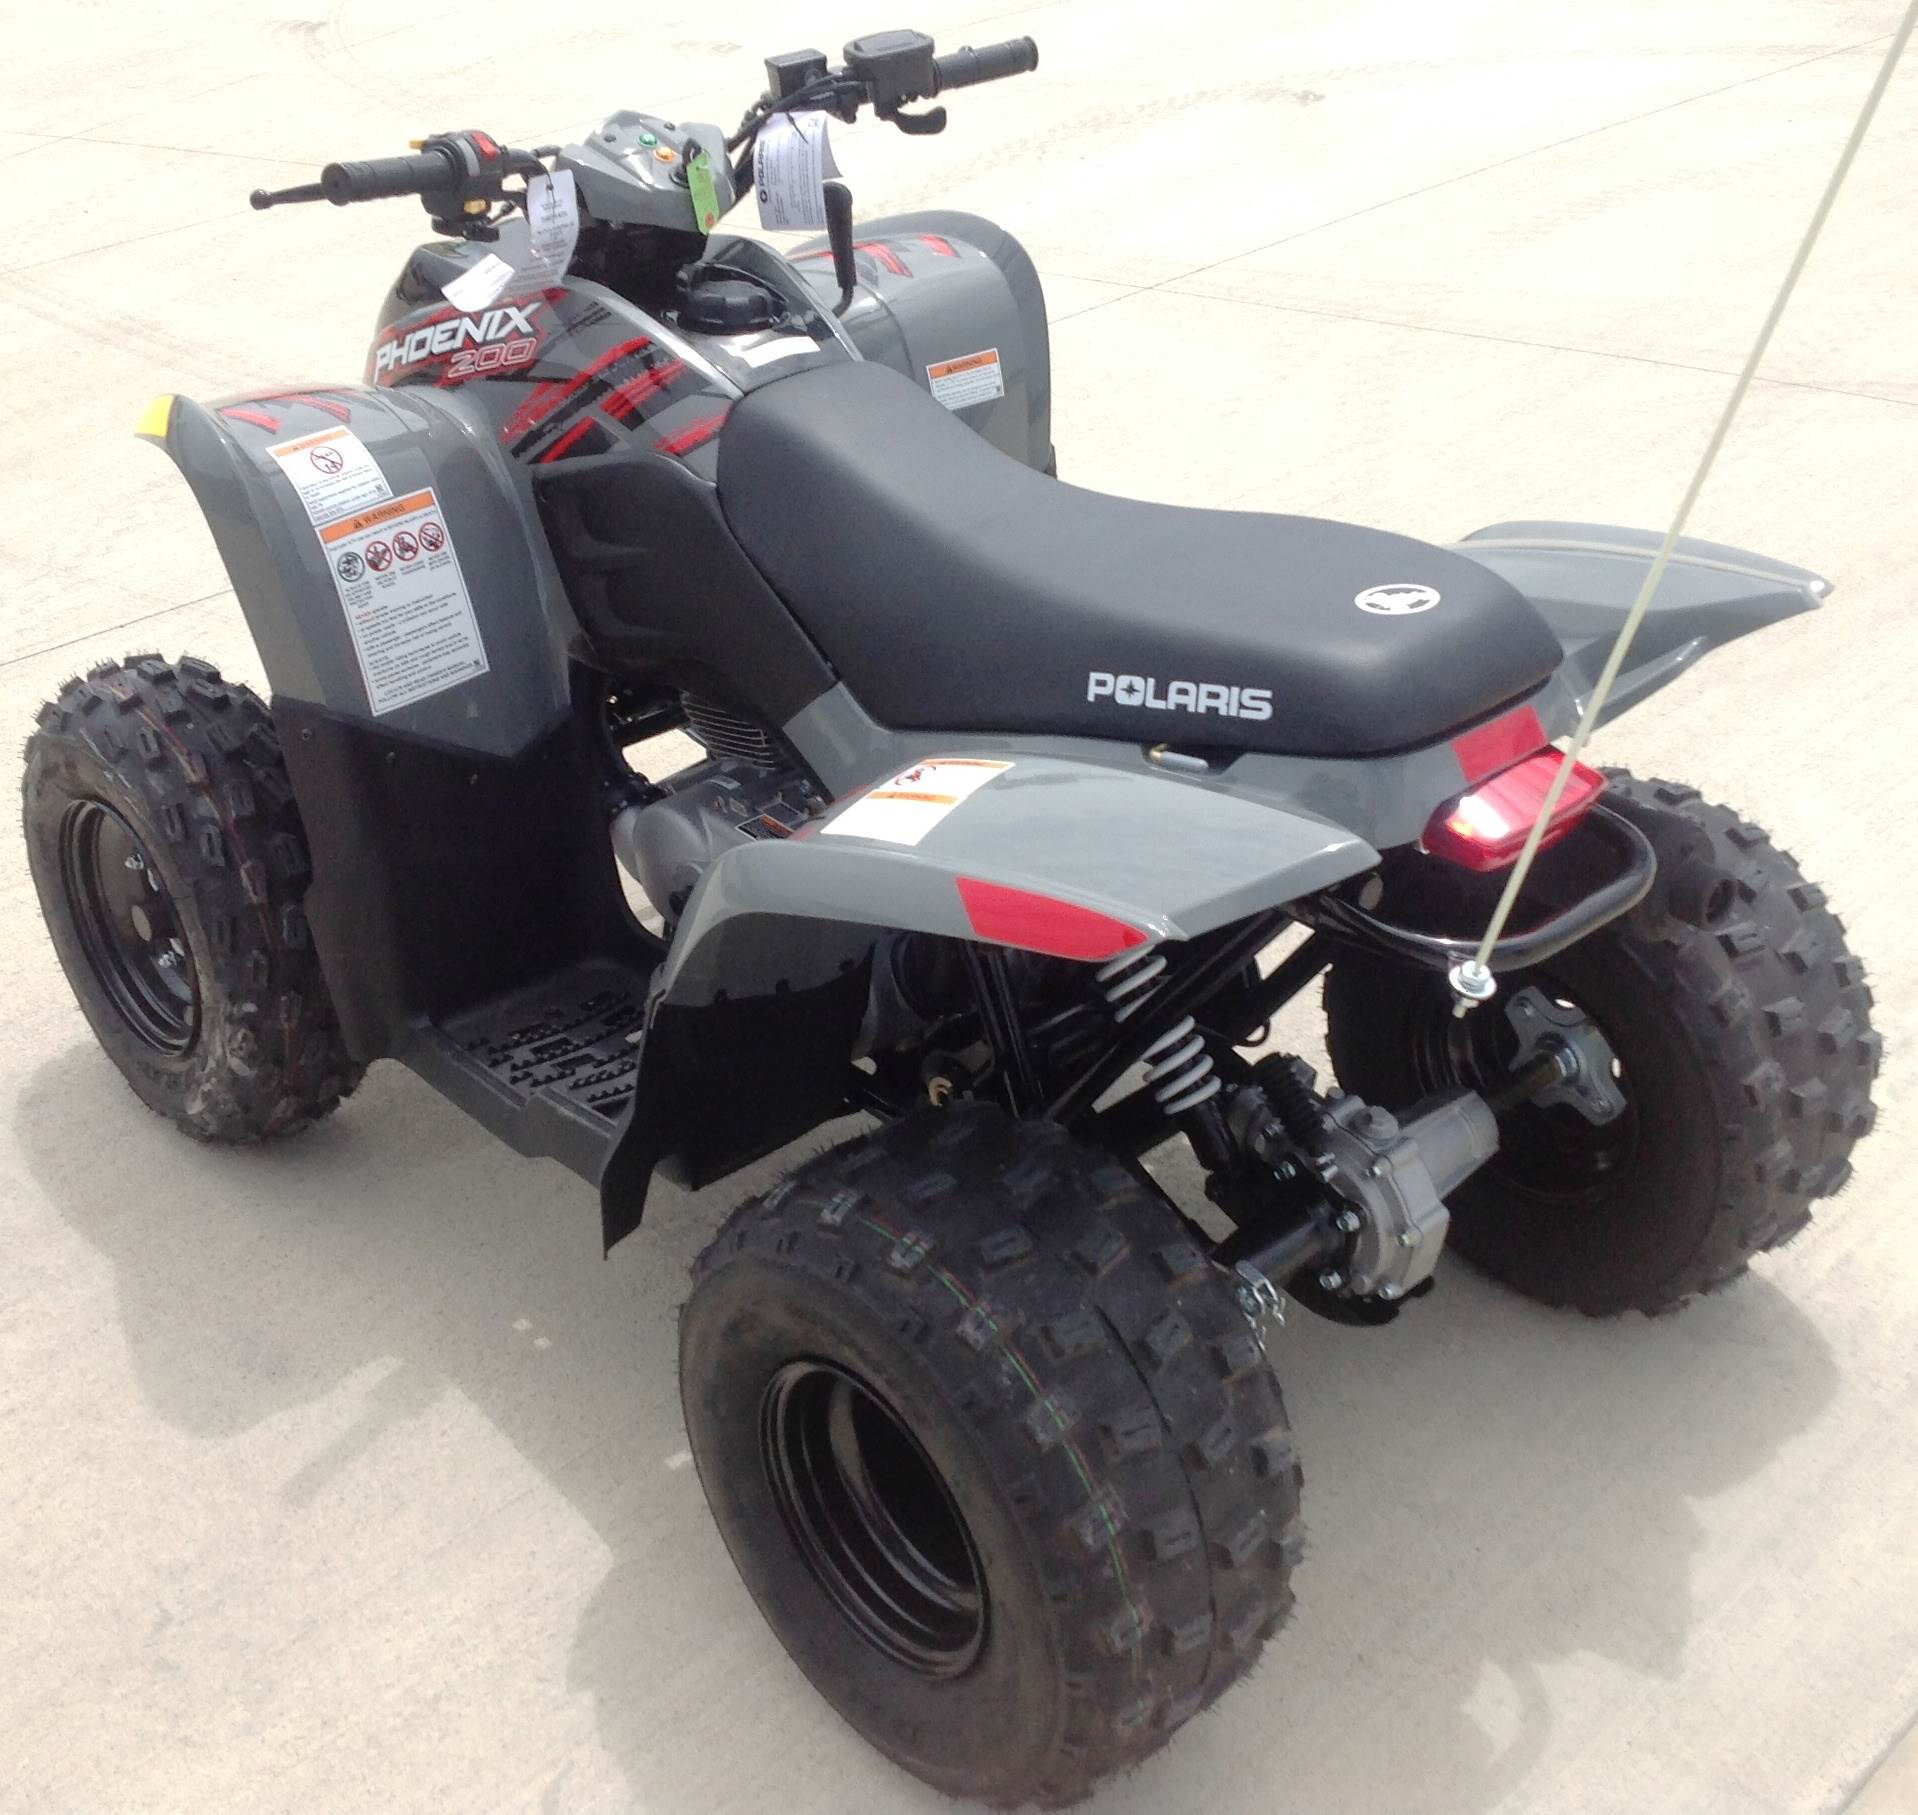 2017 Polaris Phoenix 200 in Ottumwa, Iowa